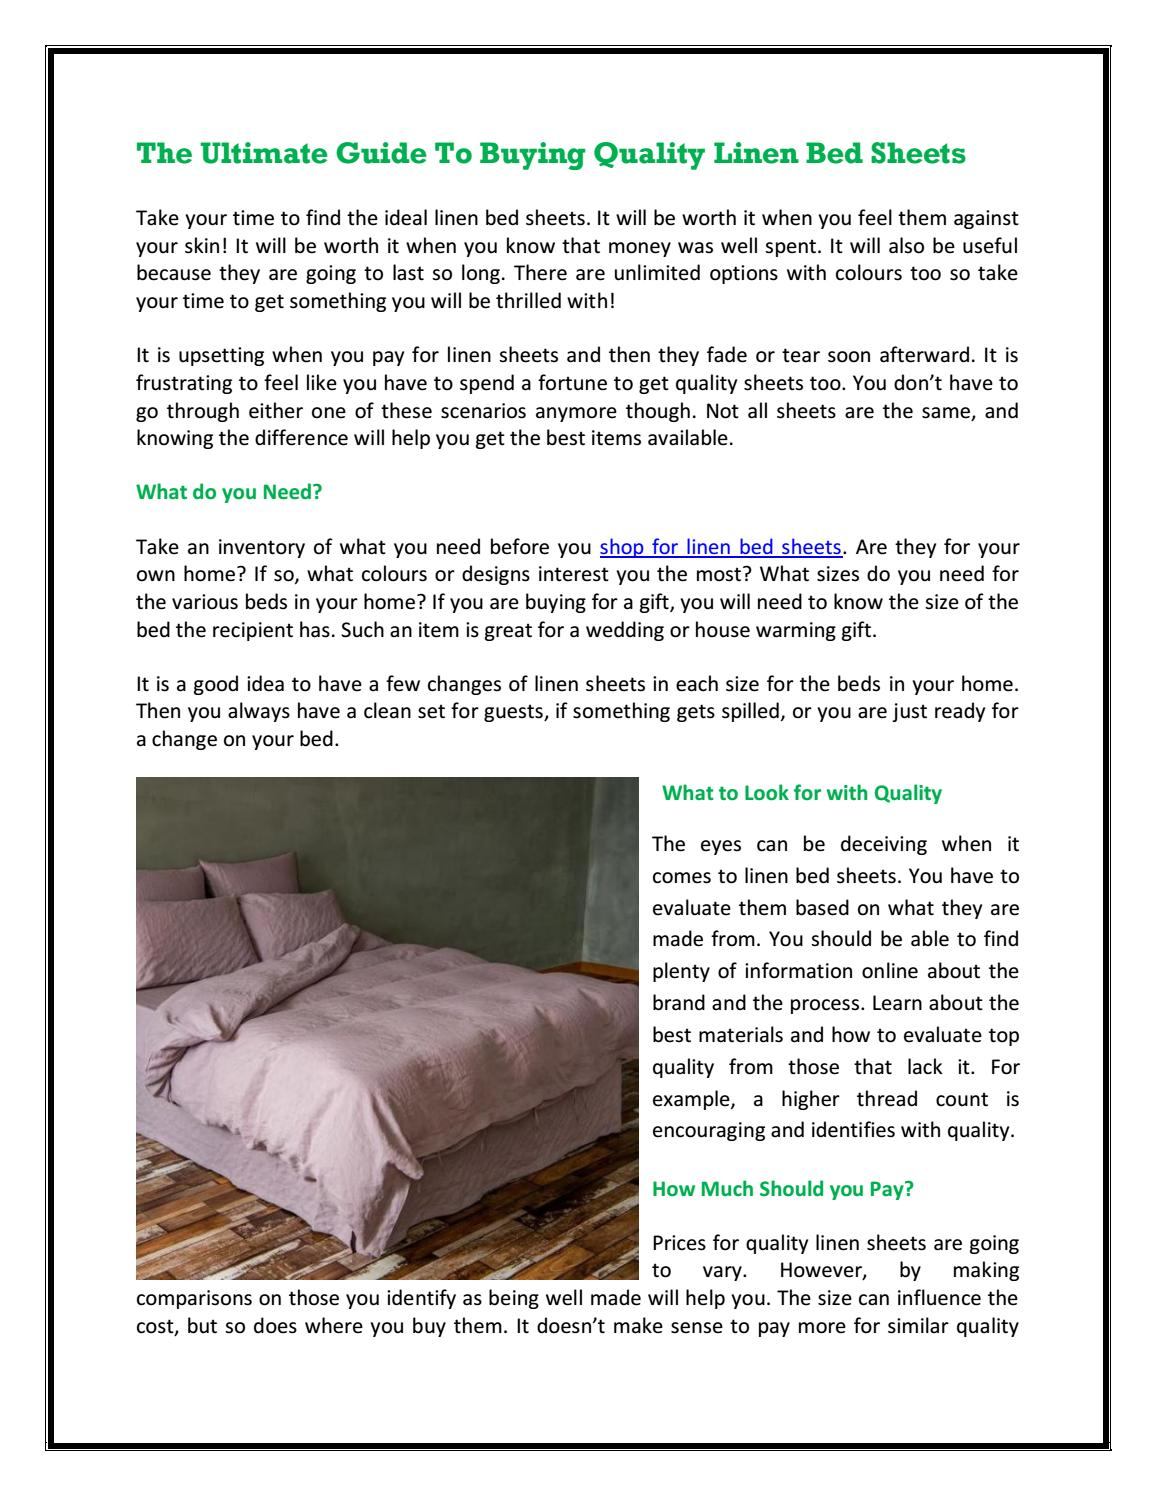 Picture of: The Ultimate Guide To Buying Quality Linen Bed Sheets By Linenshed Issuu